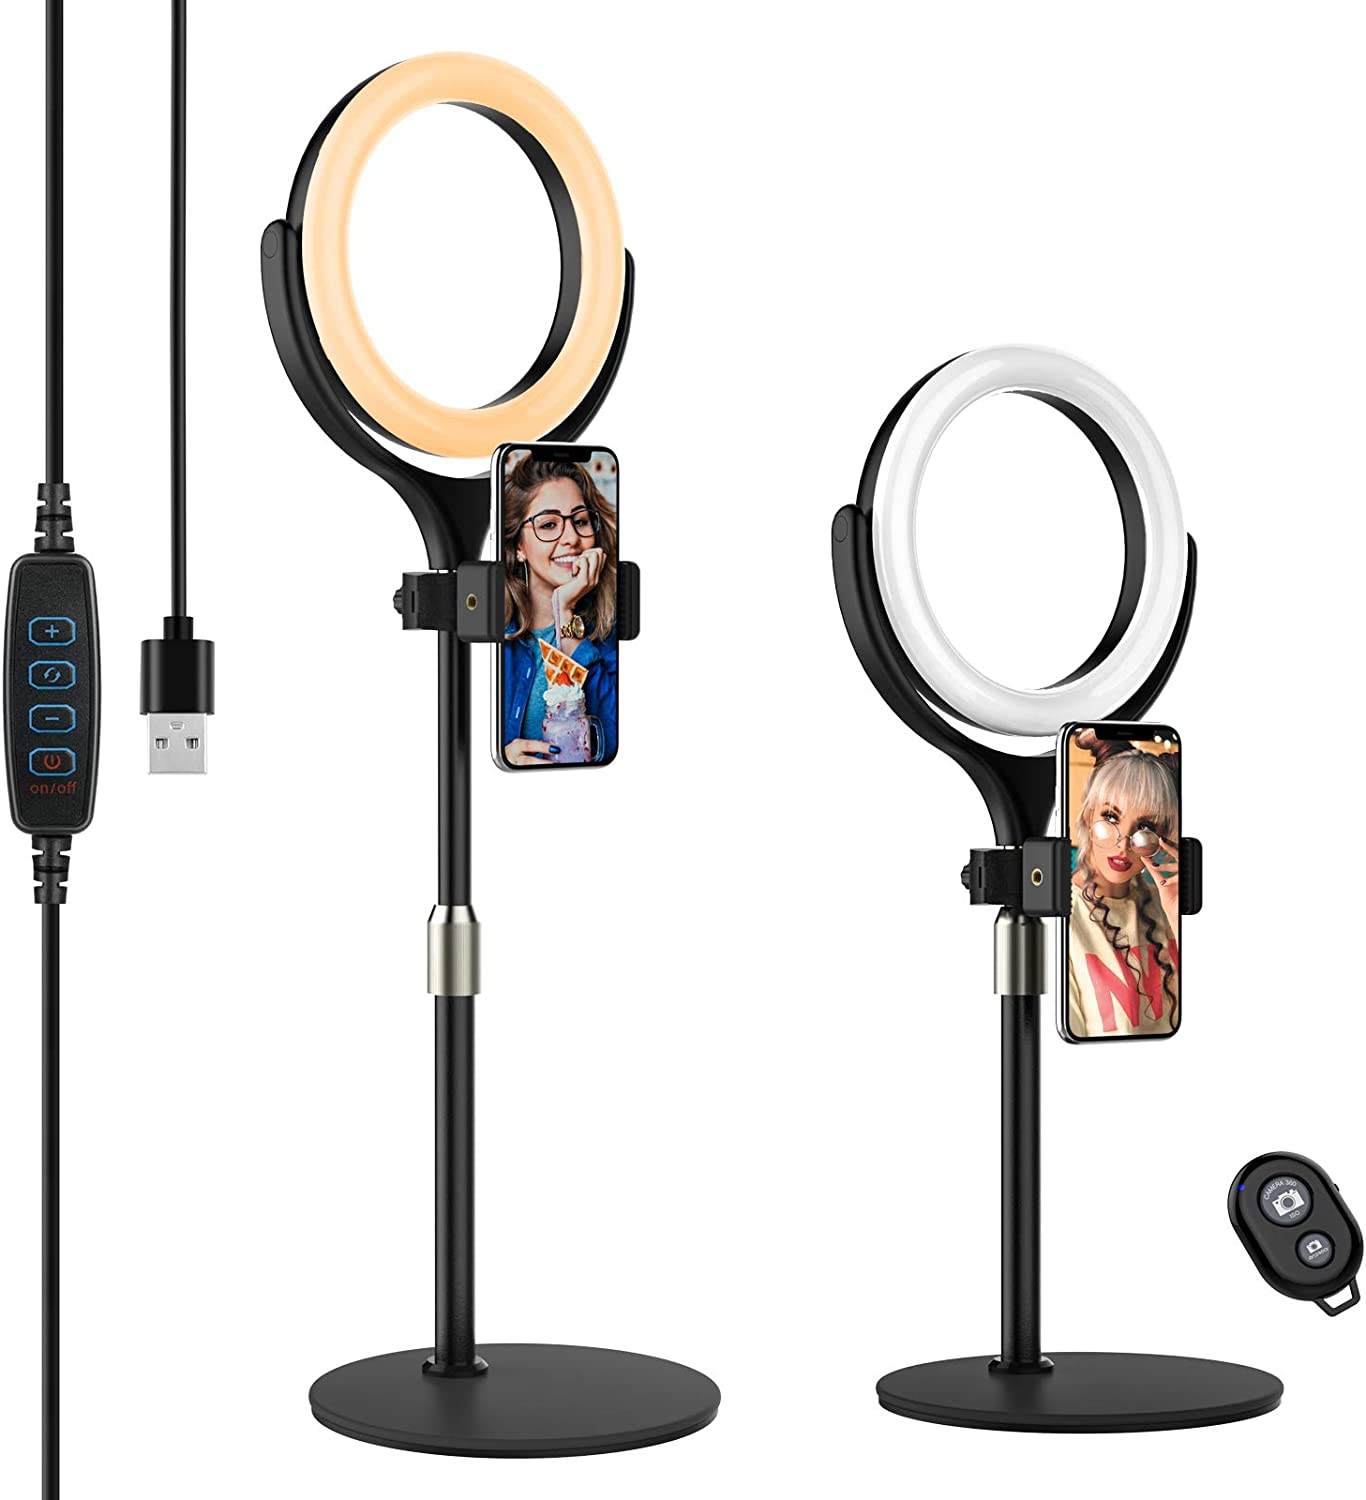 Selfie Ring Light with Adjustable Phone Holder&Stable Disc Base, Yoozon Dimmable Led RingLight with 3 Light Modes&10 Brightness for TikTok YouTube Video Shooting,Makeup,Photography,Live Streaming